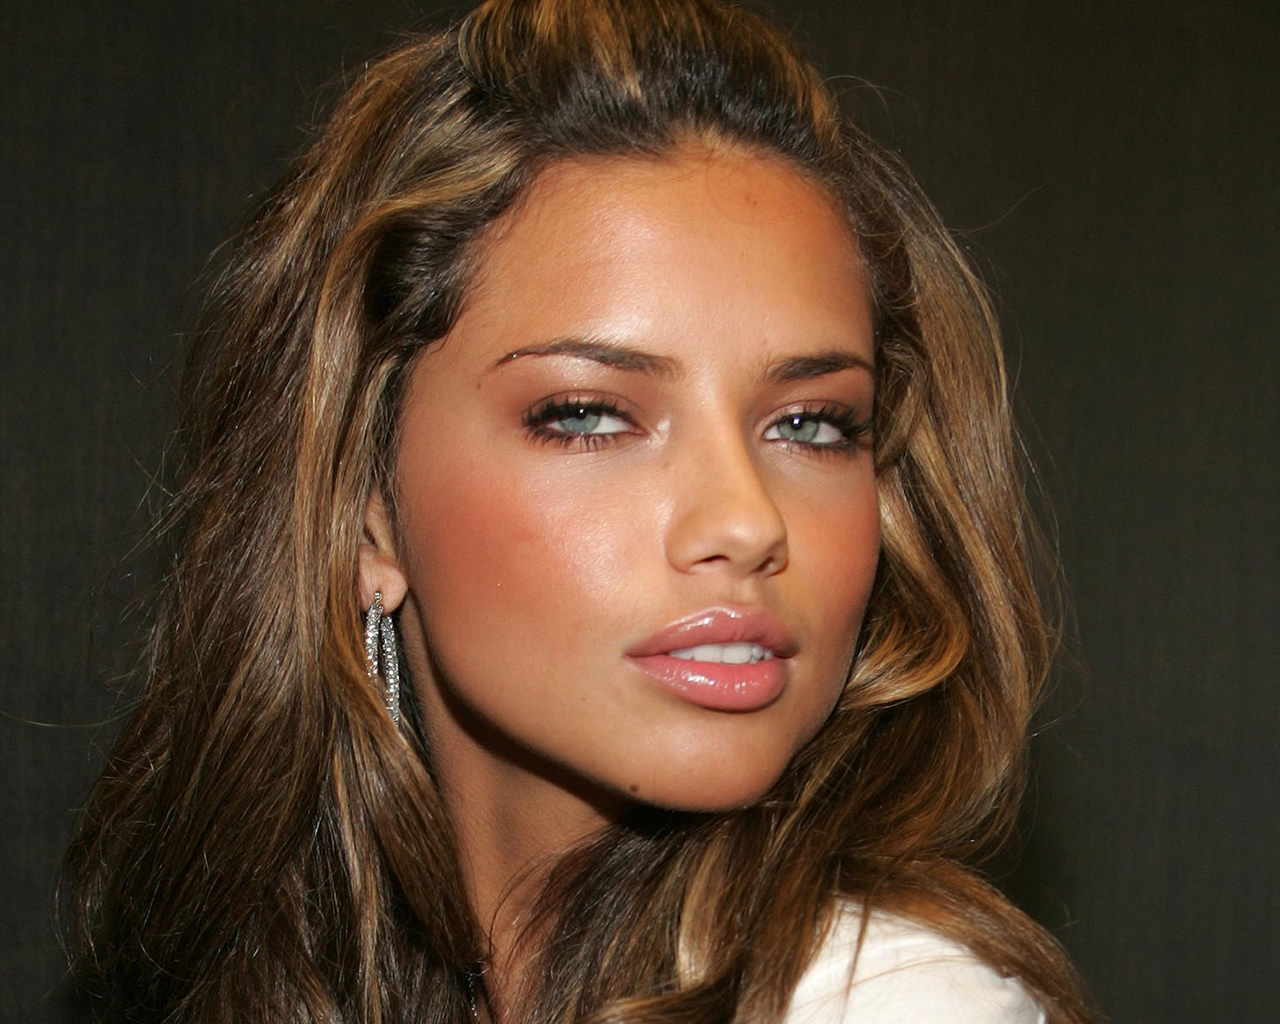 Adriana lima Wallpaper 2 With 1280 x 1024 Resolution ( 393kB )